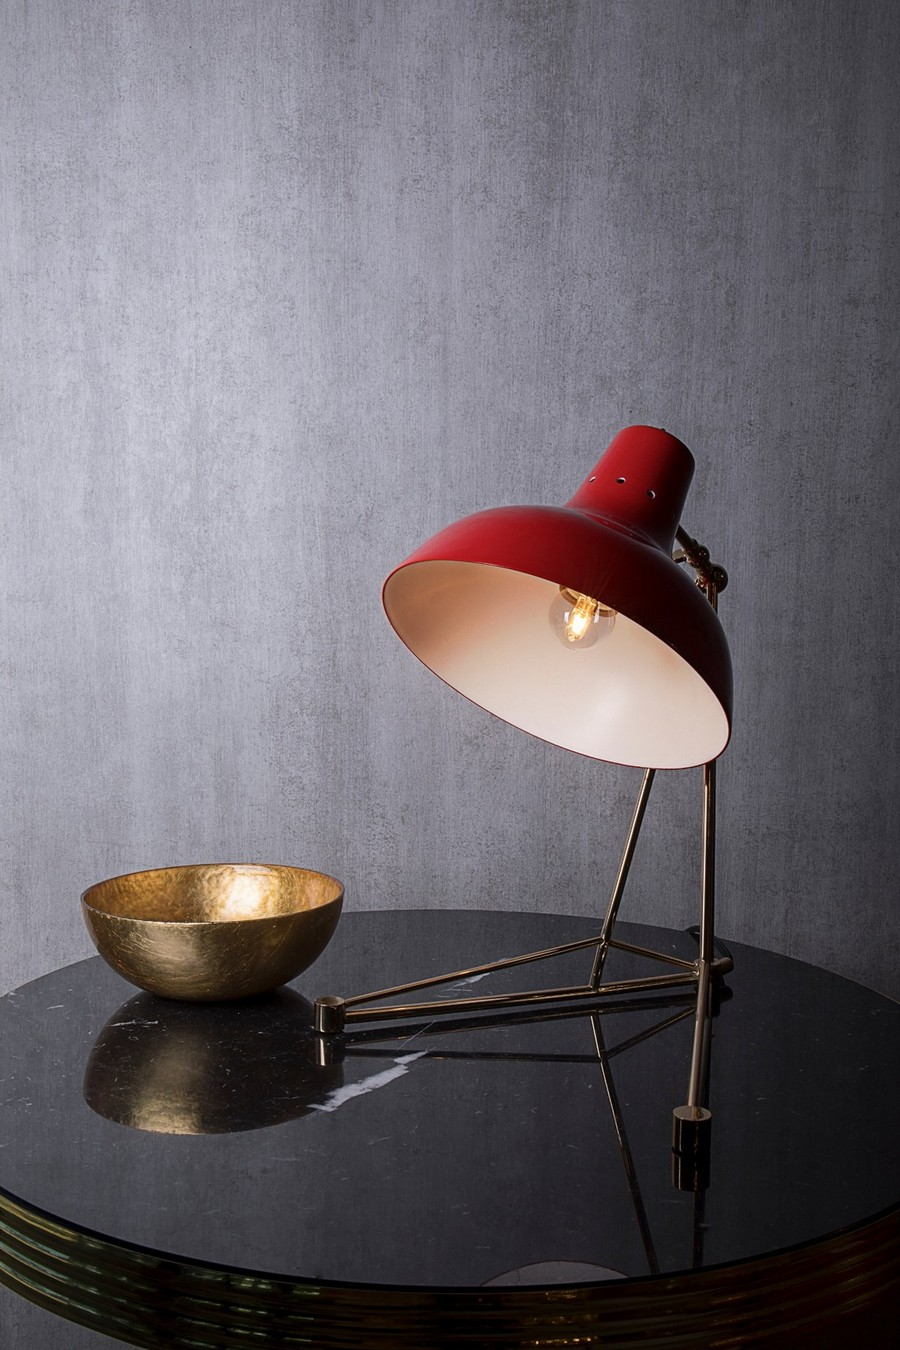 Inspire Yourself with these Amazing Lighting Products lighting products Inspire Yourself with these Amazing Lighting Products Inspire Yourself with these Amazing Lighting Products 2